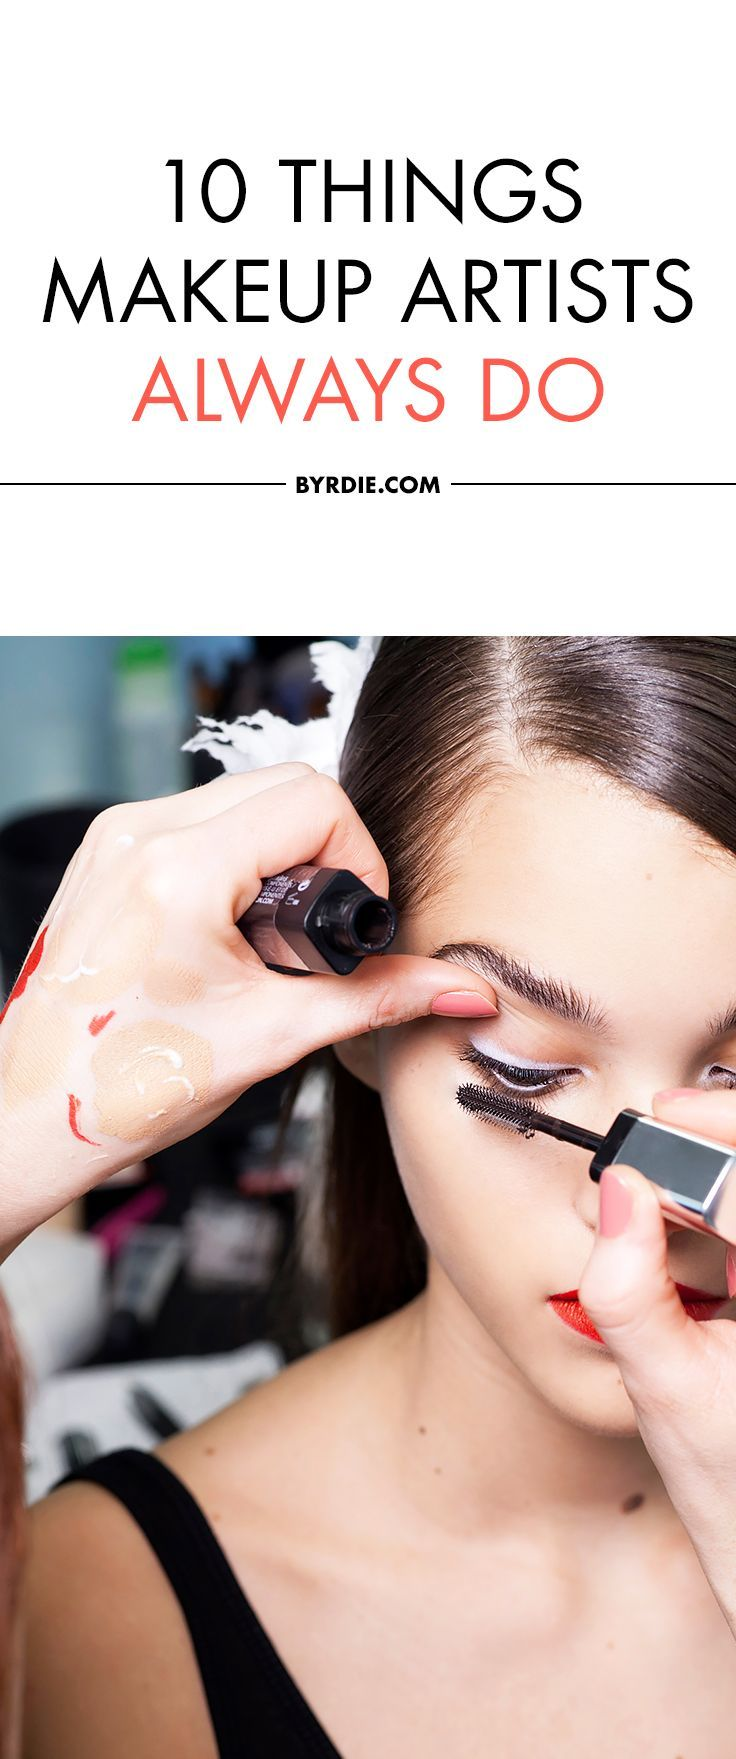 what skills do you need for cosmetology